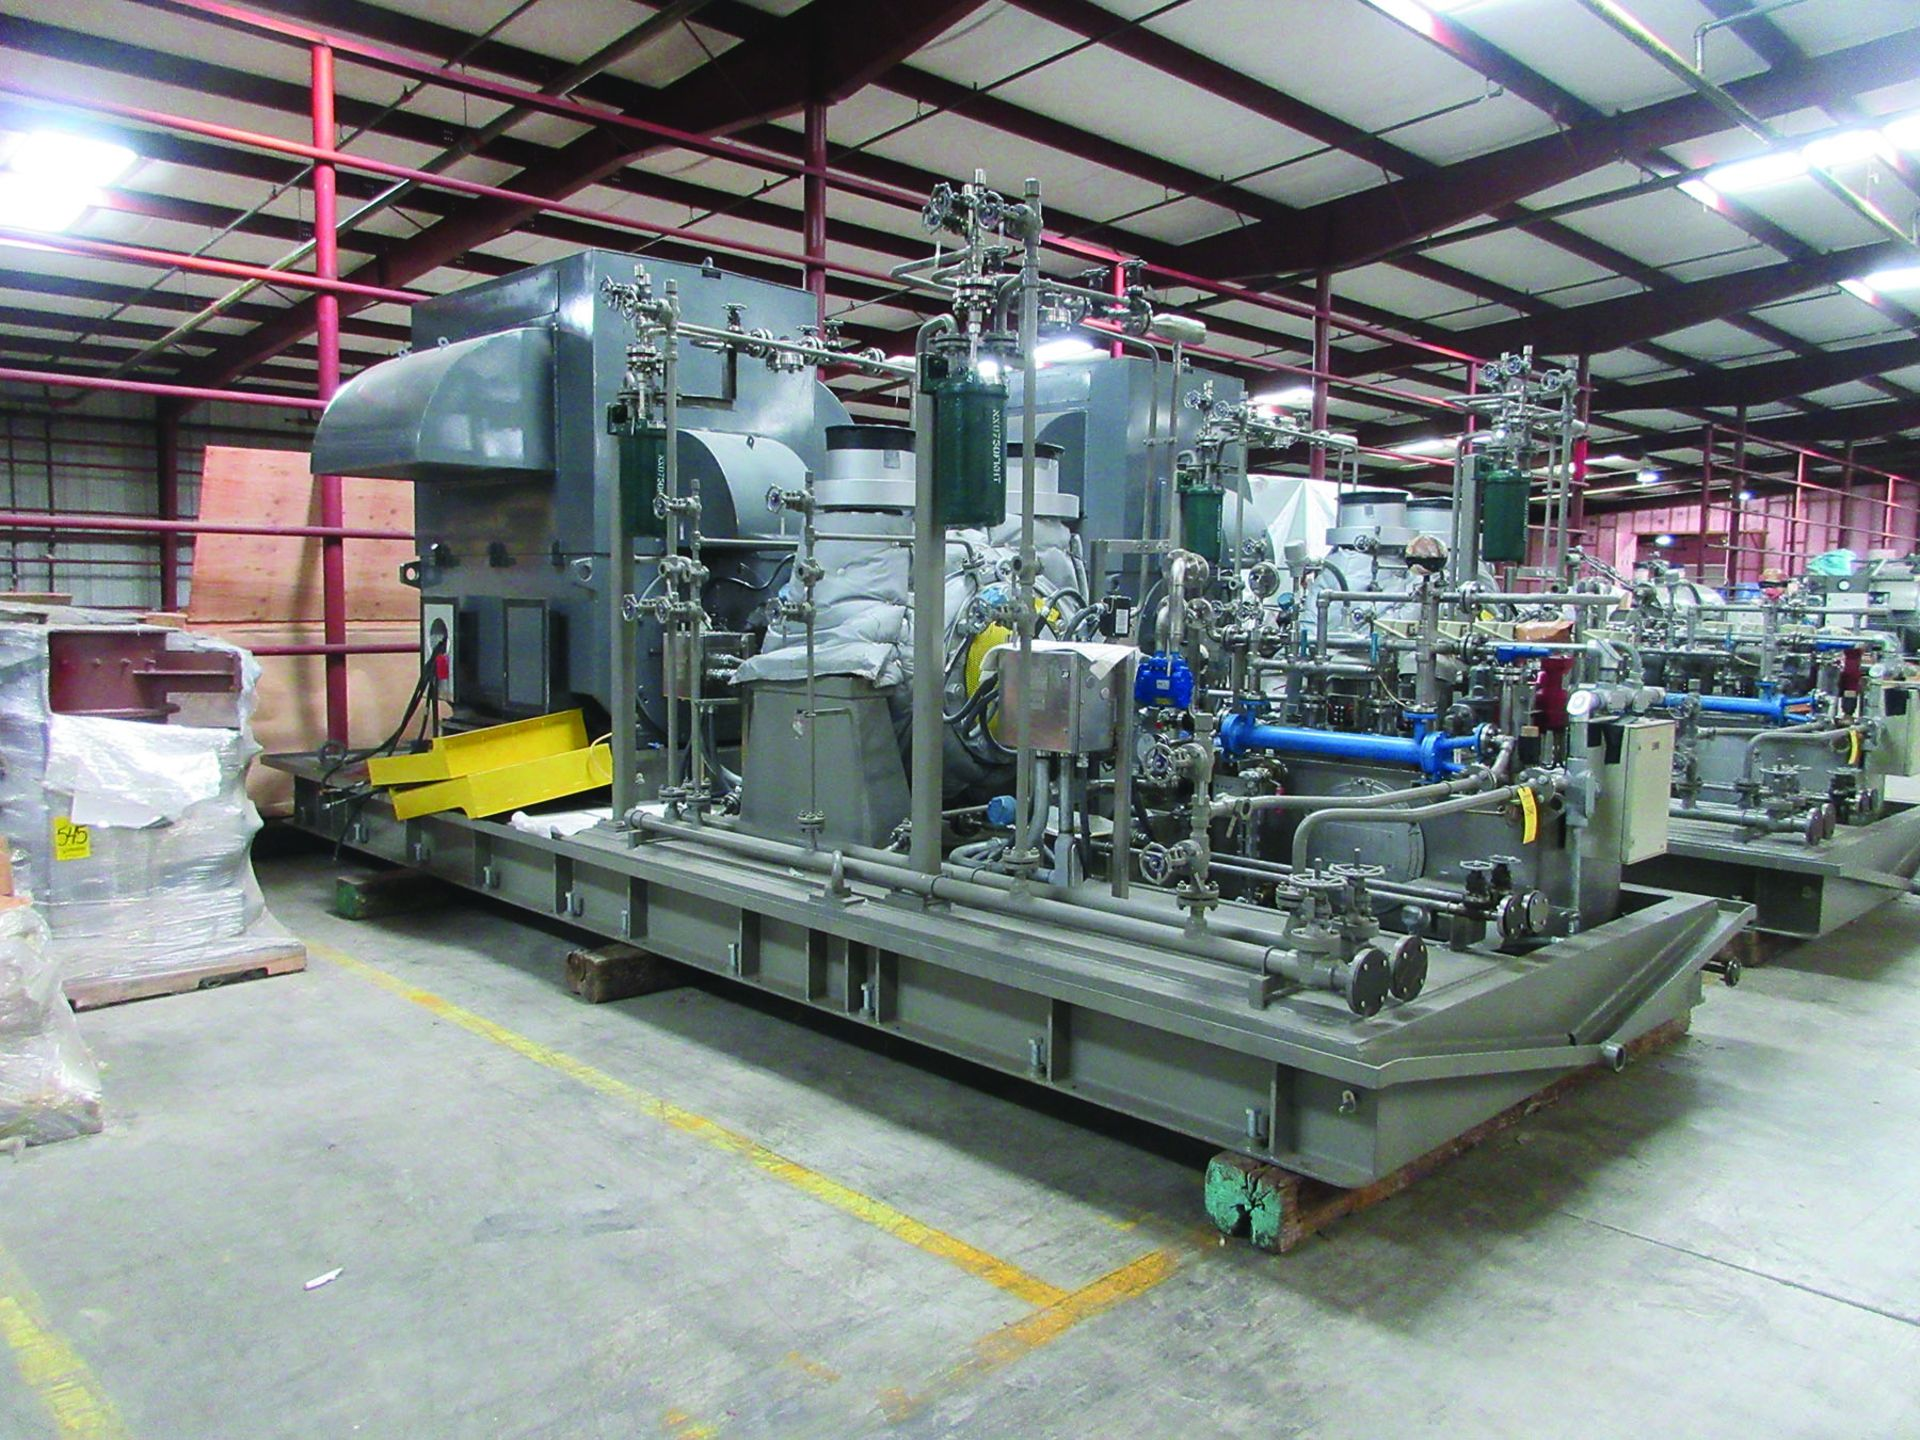 BOILER FEEDWATER BOOSTER PUMP SLED, GE 3,000 HP INDUCTION MOTOR 3585 RPM, 6600 VOLTS, 8313S FRAME,